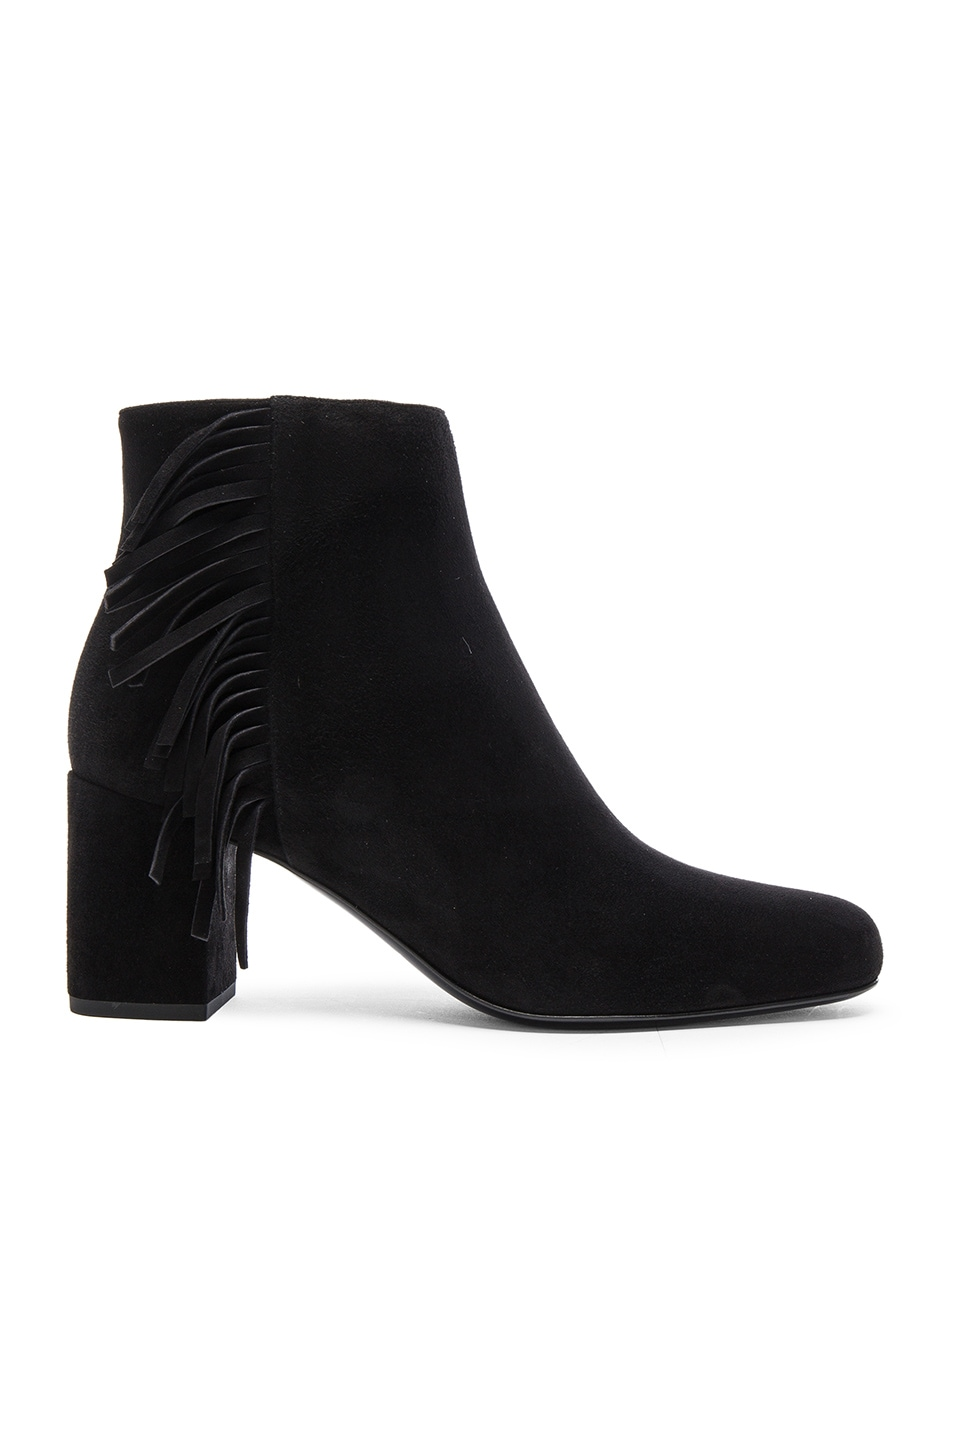 Image 1 of Saint Laurent Babies Fringe Zip Suede Boots in Black